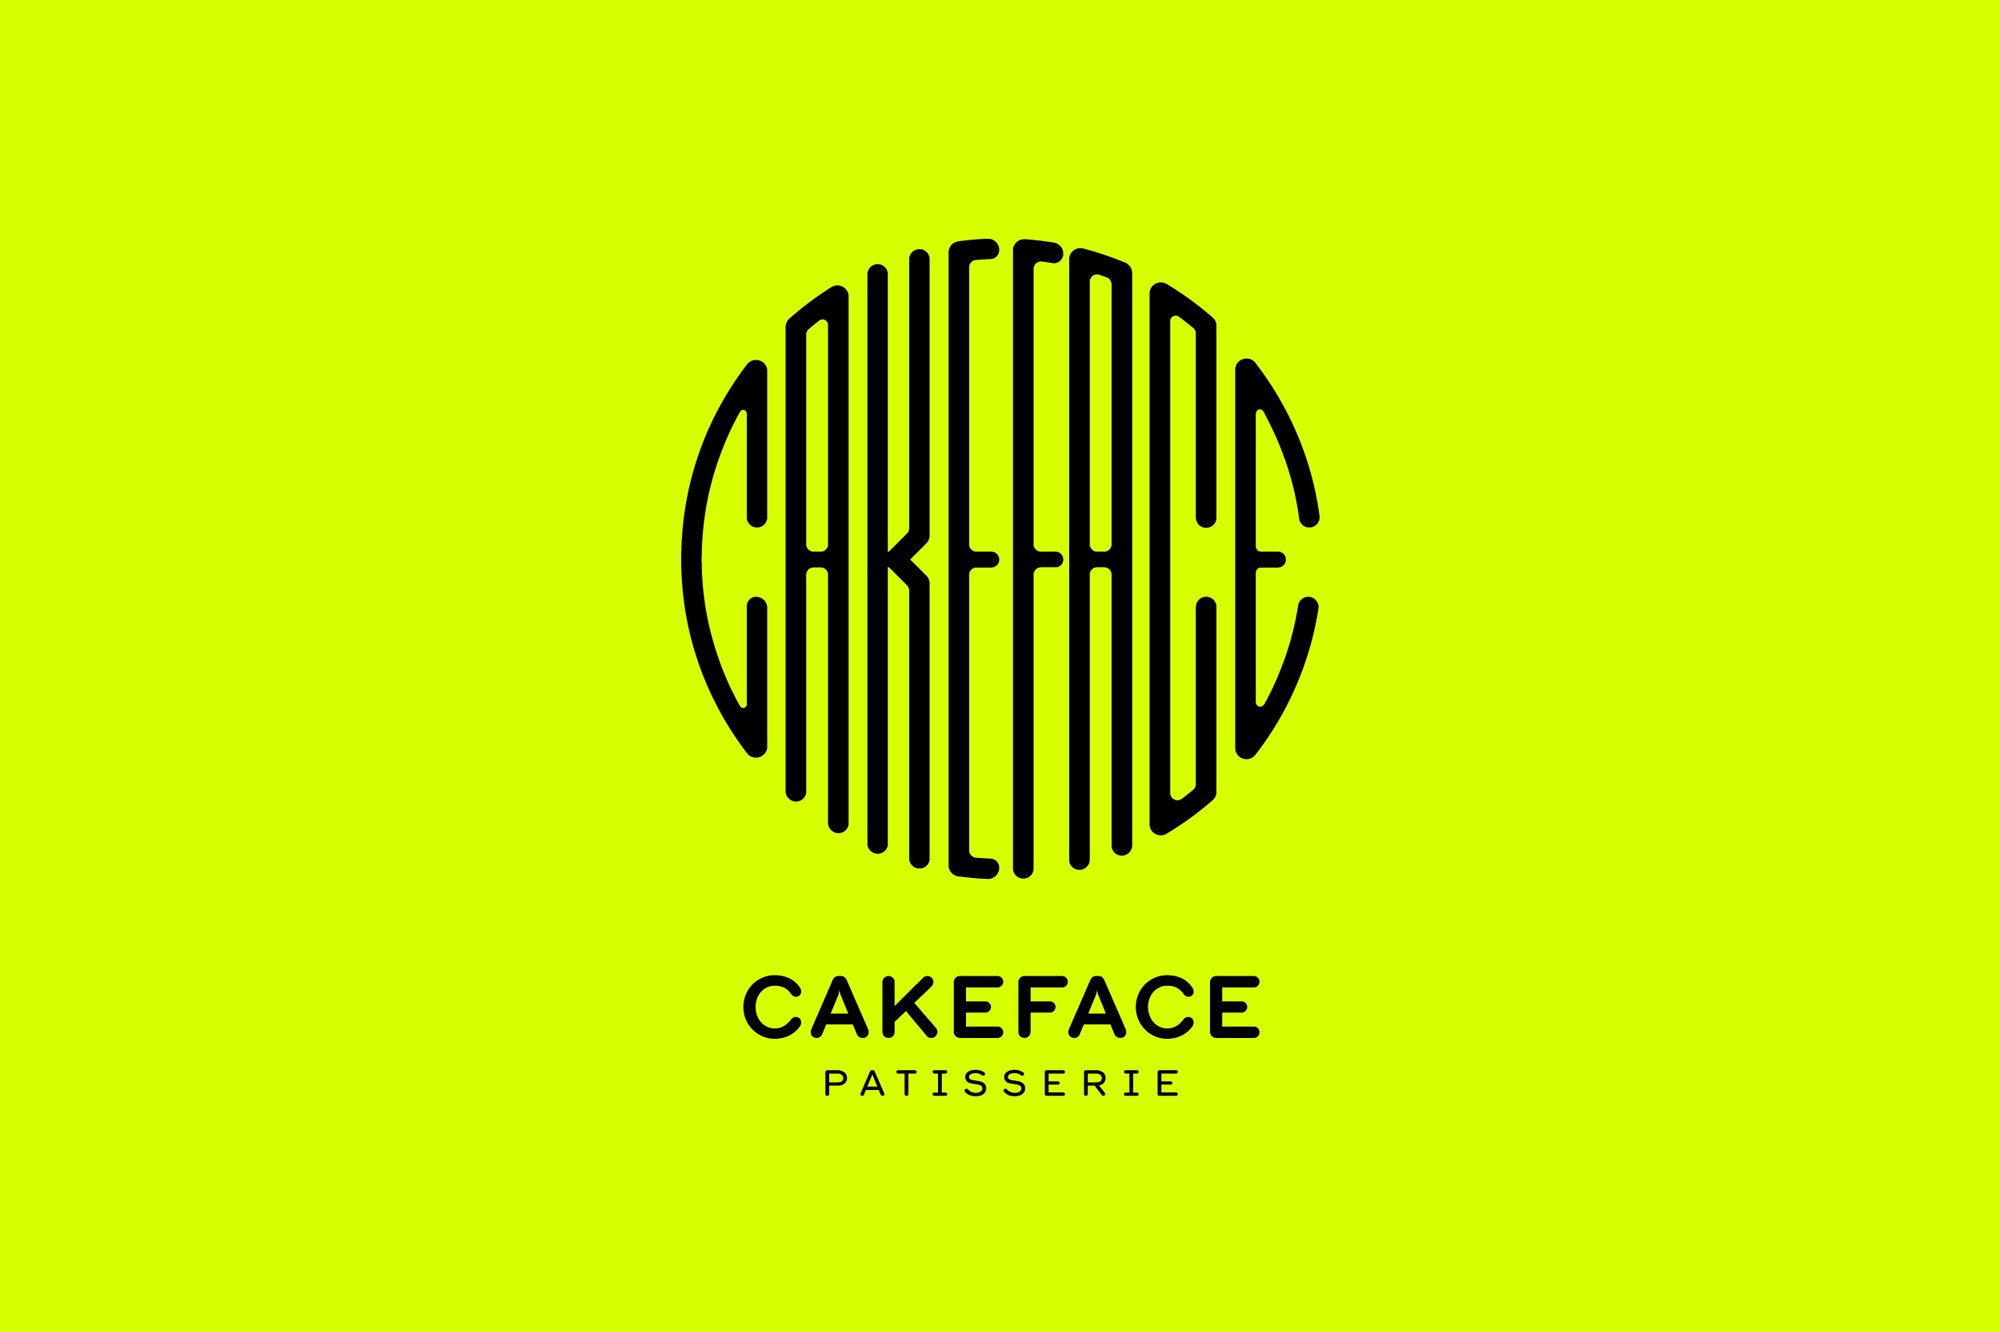 Cover image: Cakeface Patisserie Brand Identity